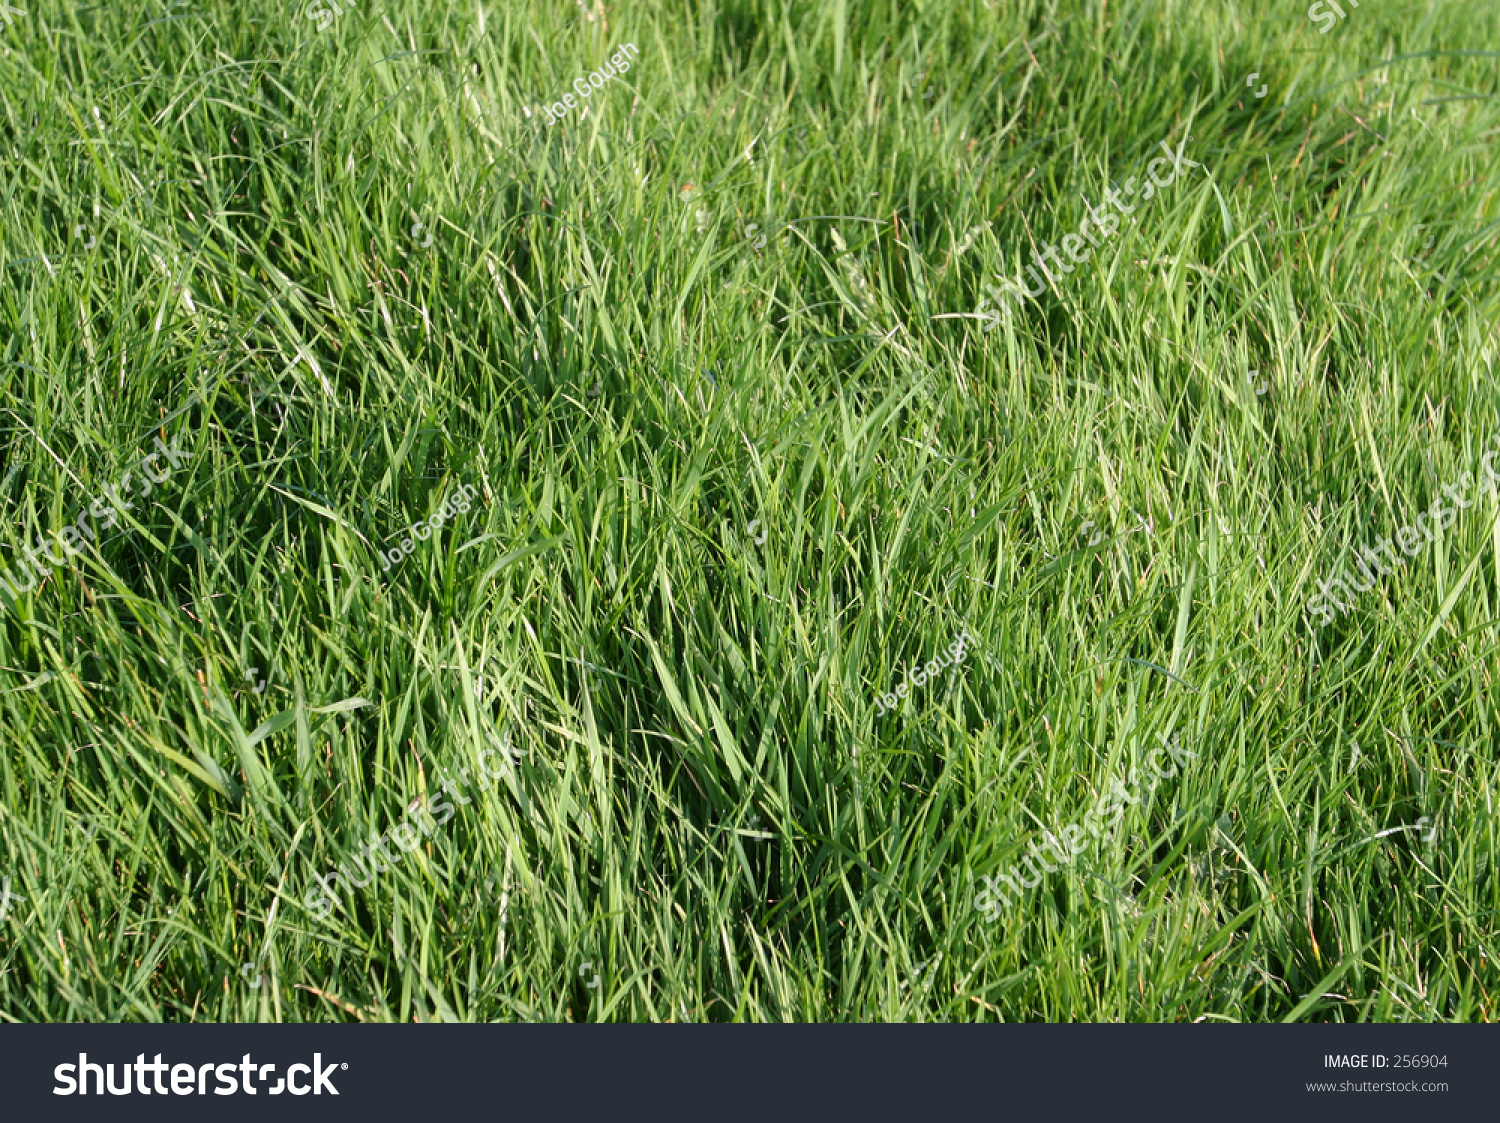 how to get lush grass